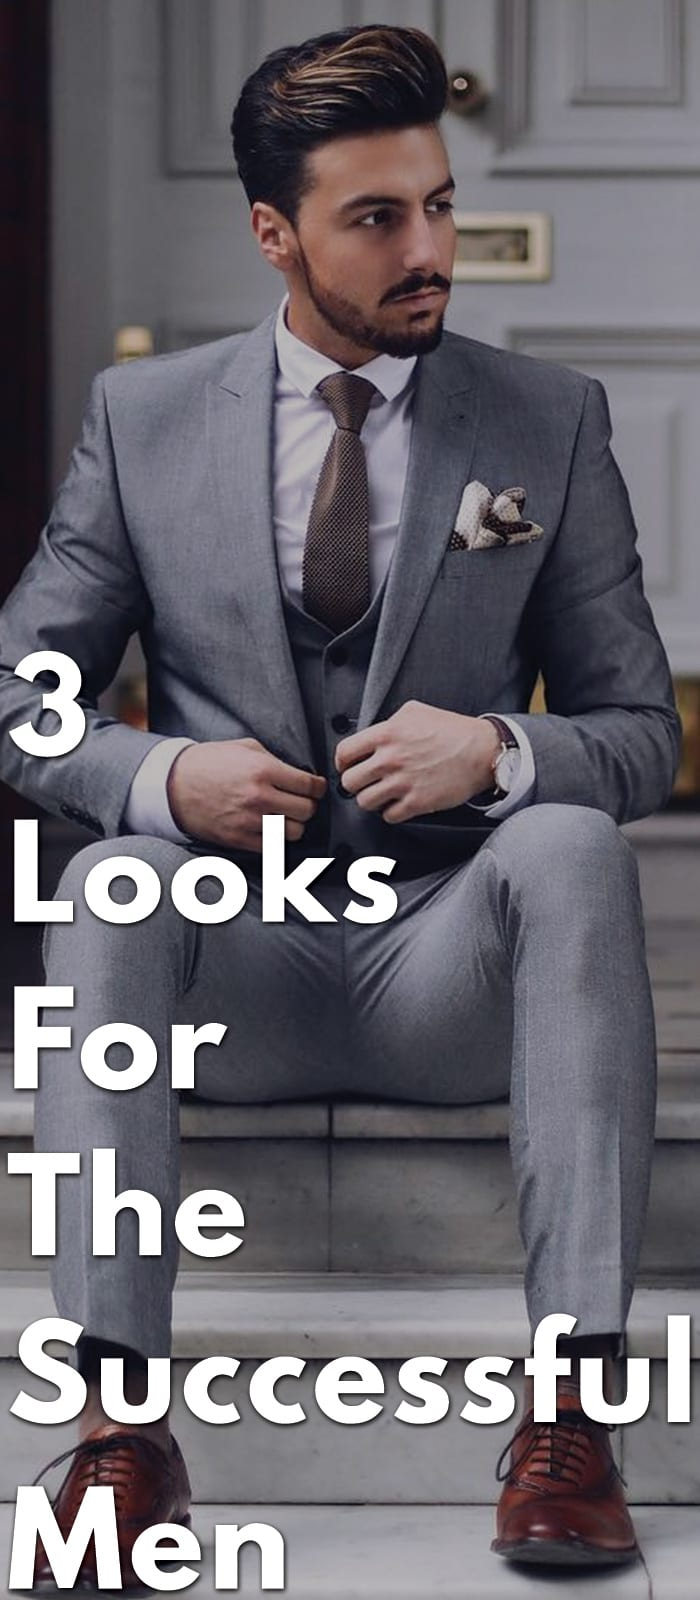 3 Looks For The Successful Man